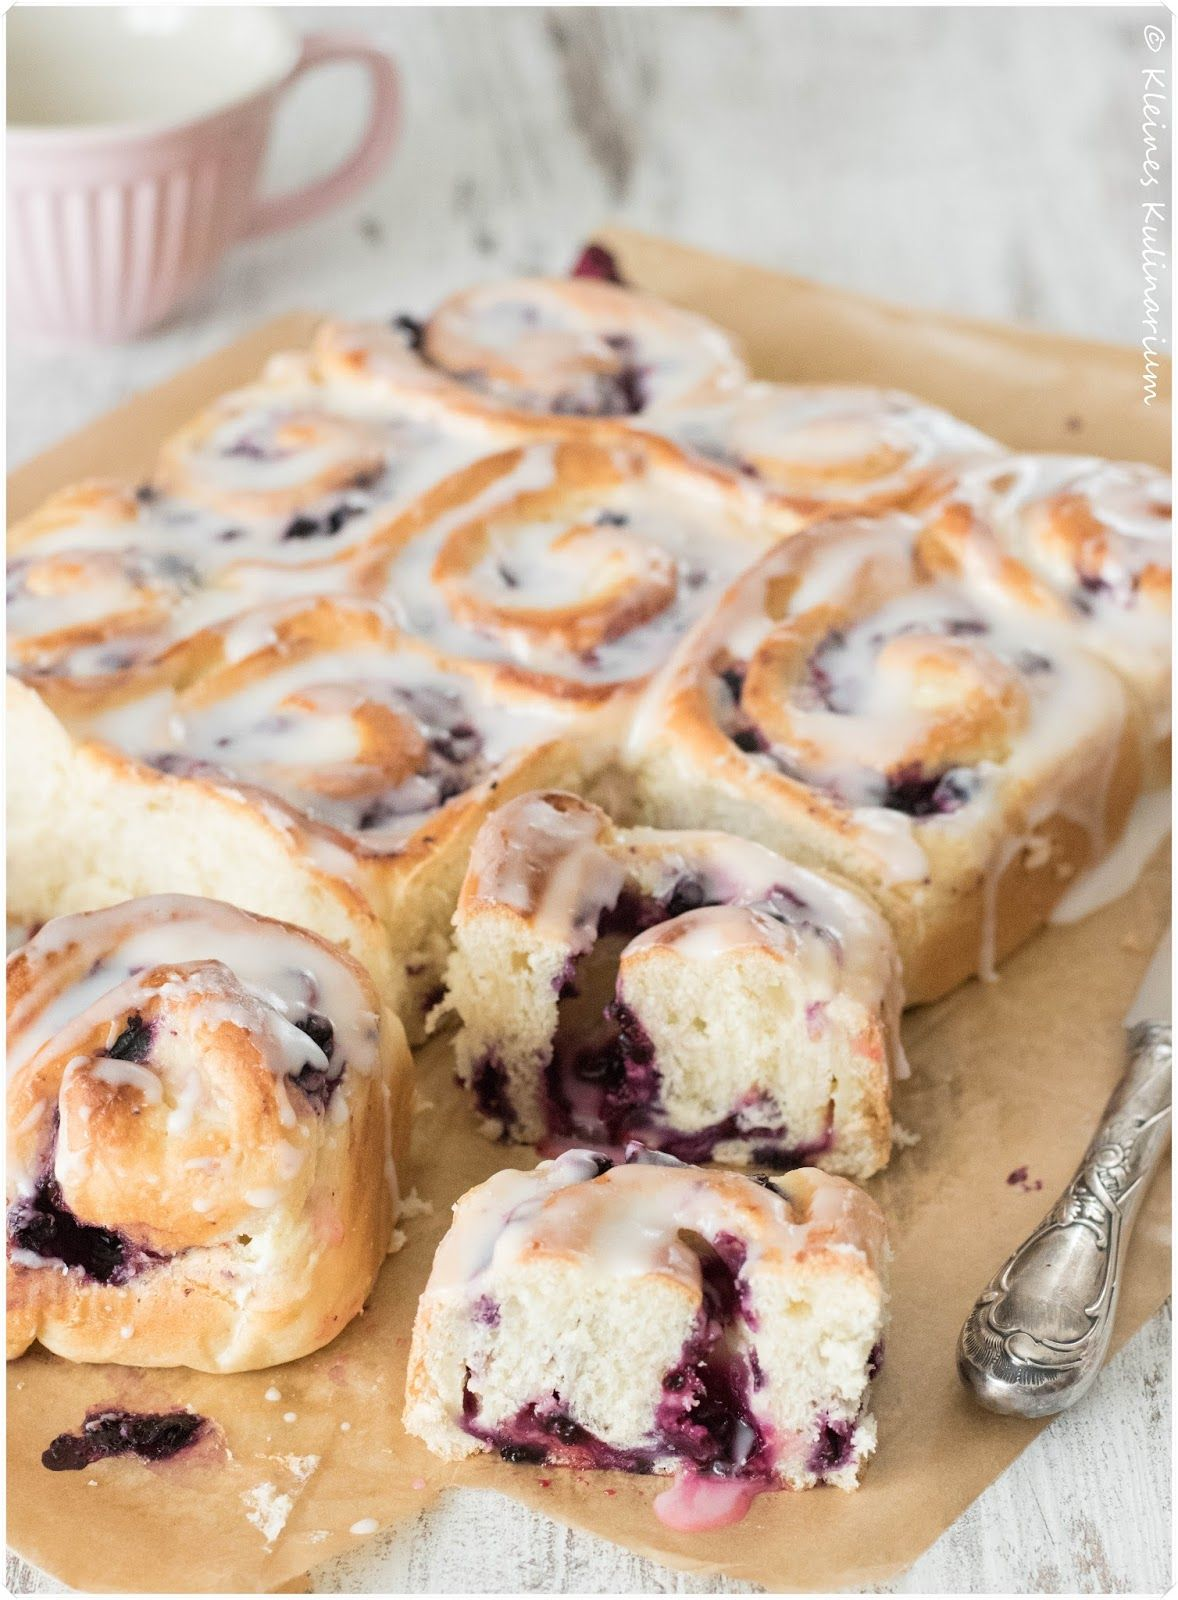 Photo of Blueberry Cream Cheese Snails or Blueberry Cheesecake Rolls – Small culinary delights